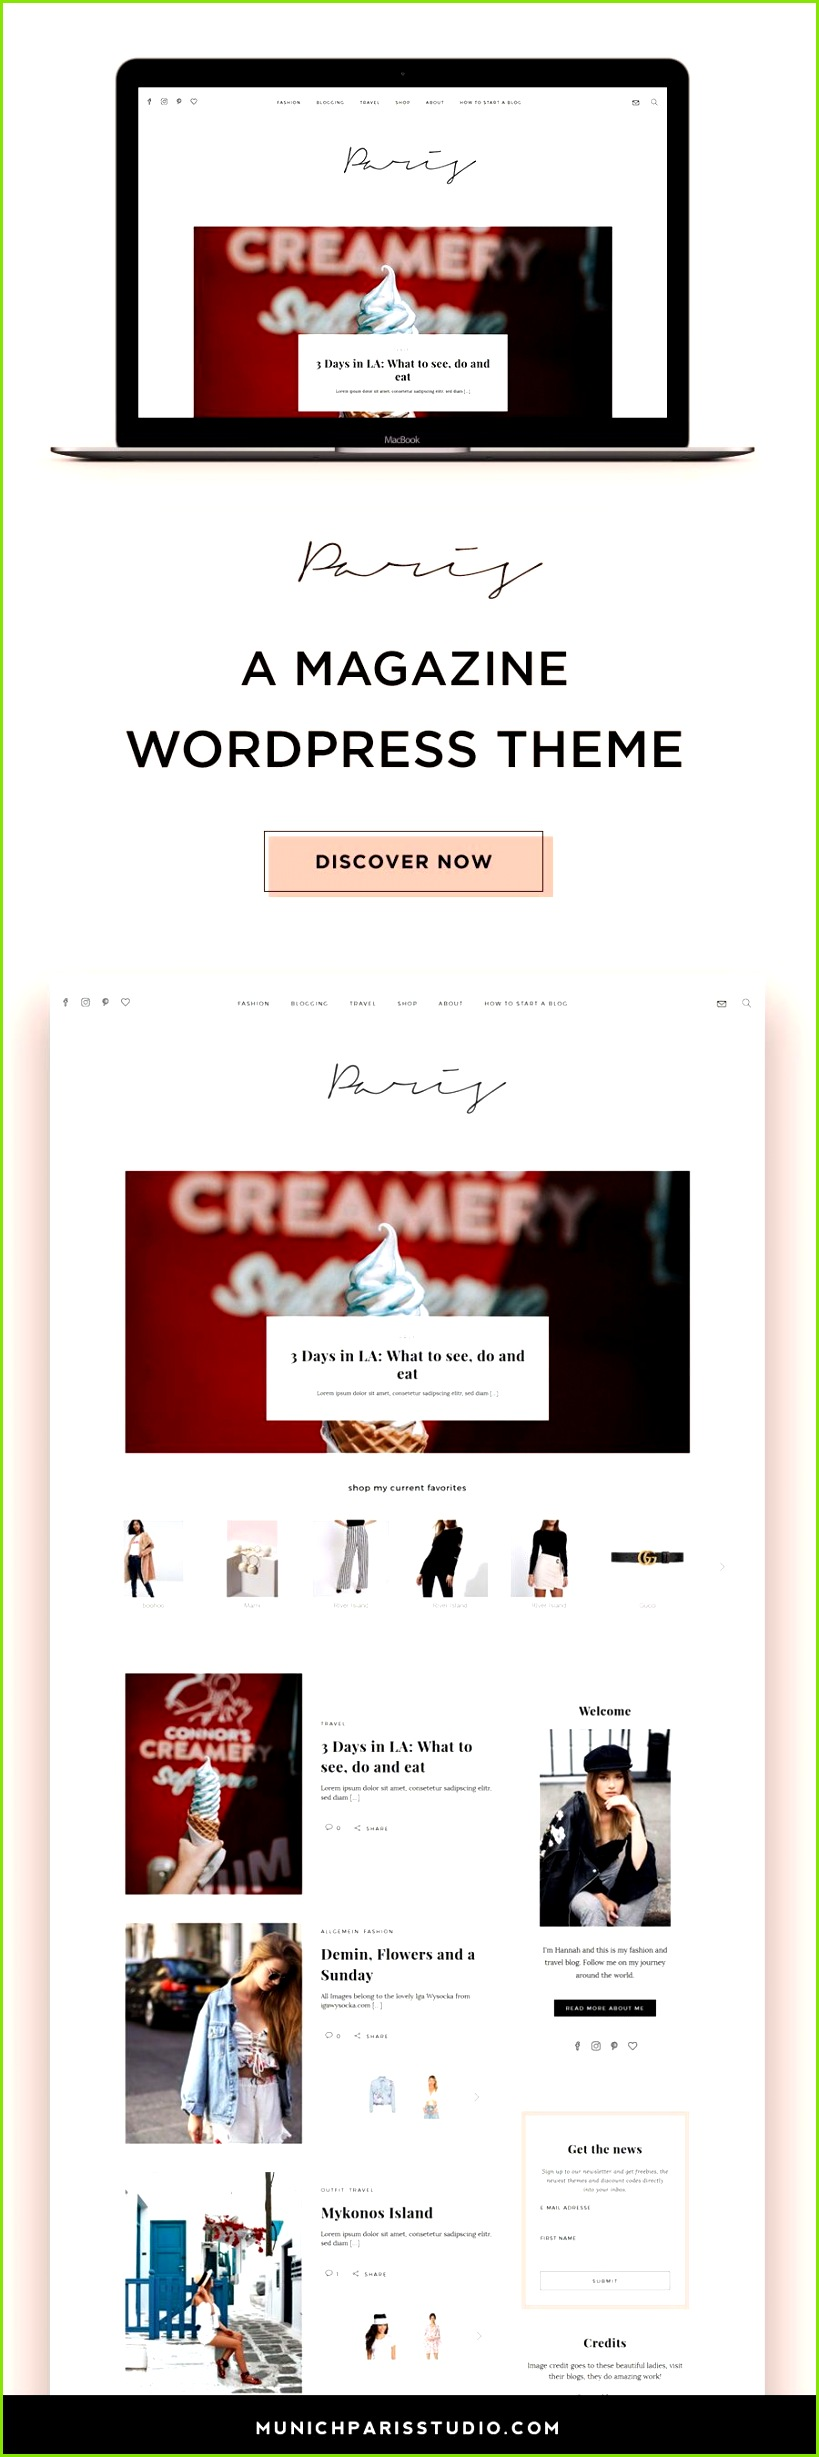 Paris is a fancy cute and highly customizable WordPress Theme perfect for lifestyle and fashion